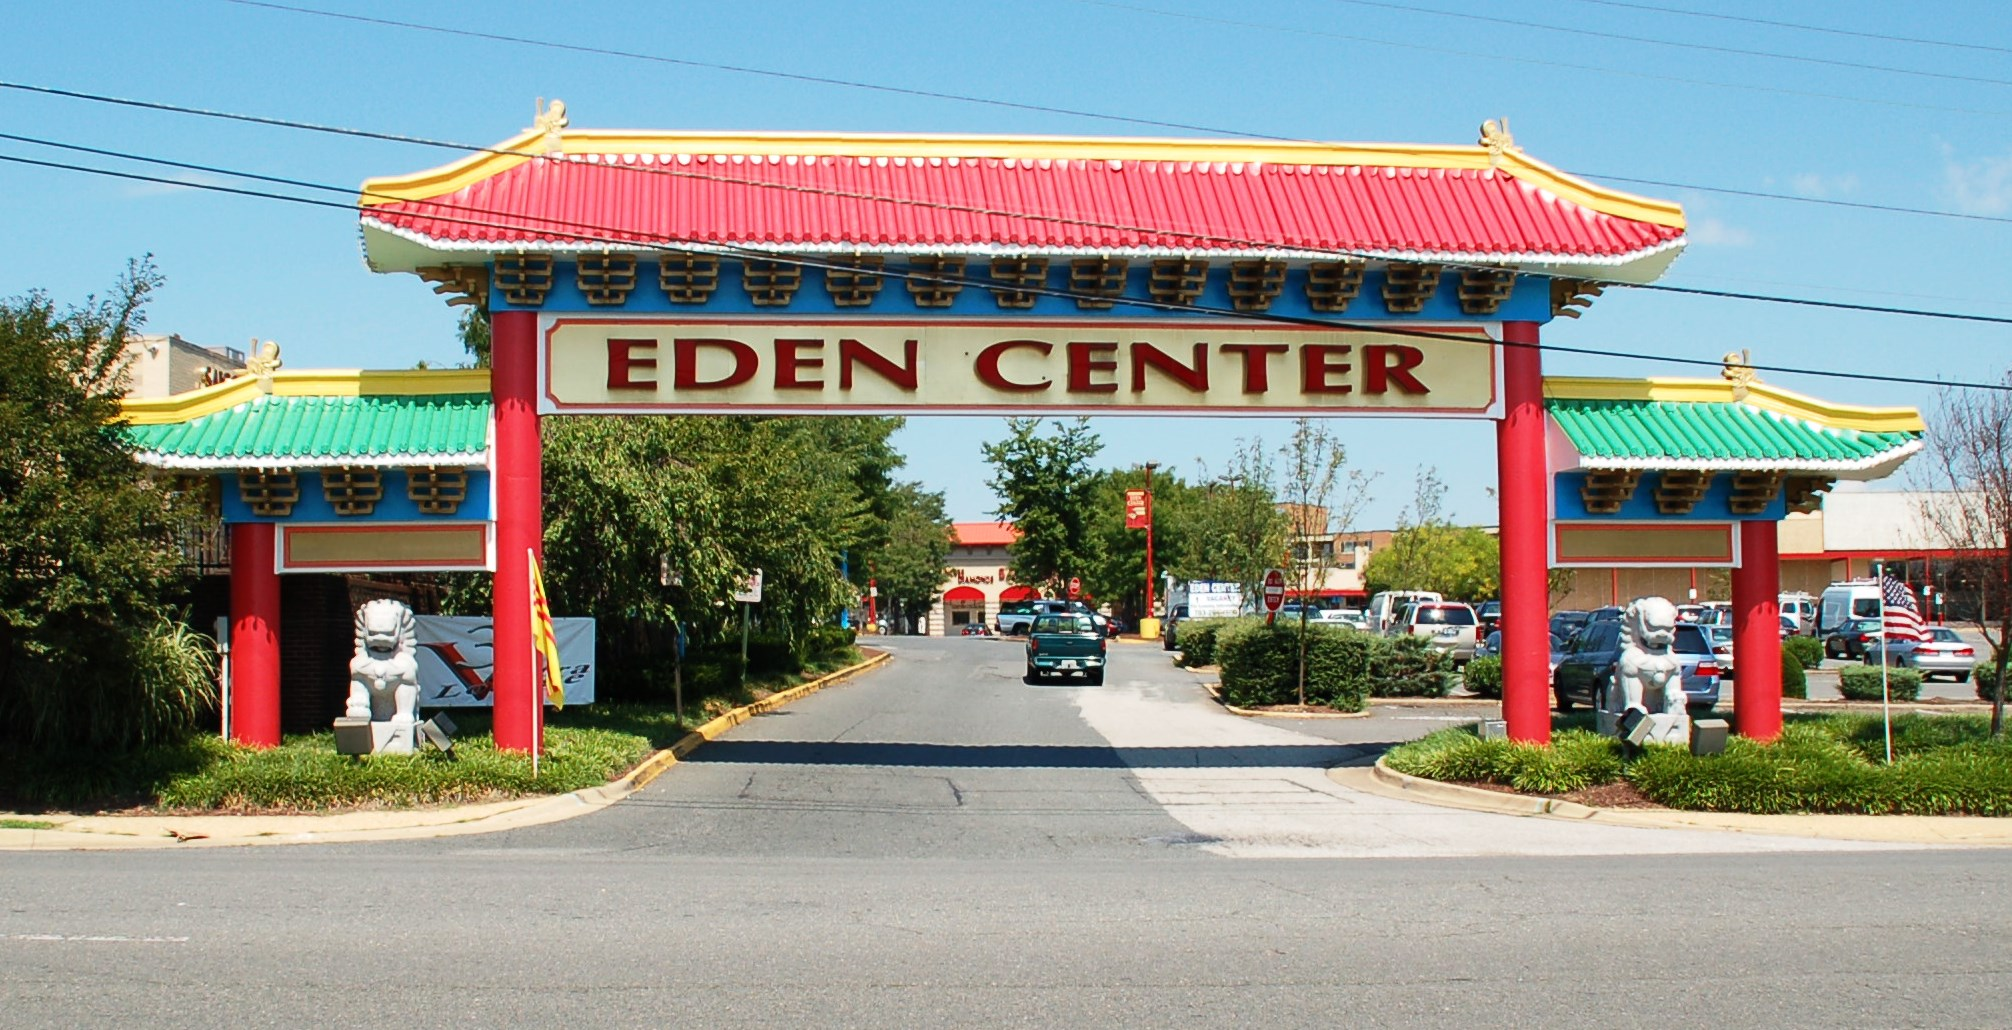 Eden Center is home to over 100 food stalls and restaurants, with an incredible variety of what to eat. But honestly, a visit to Eden Center can be a bit overwhelming and intimidating for a first timer -- how do you know which spot to pick and what to eat?!{ } (Image: Courtesy Eden Center)